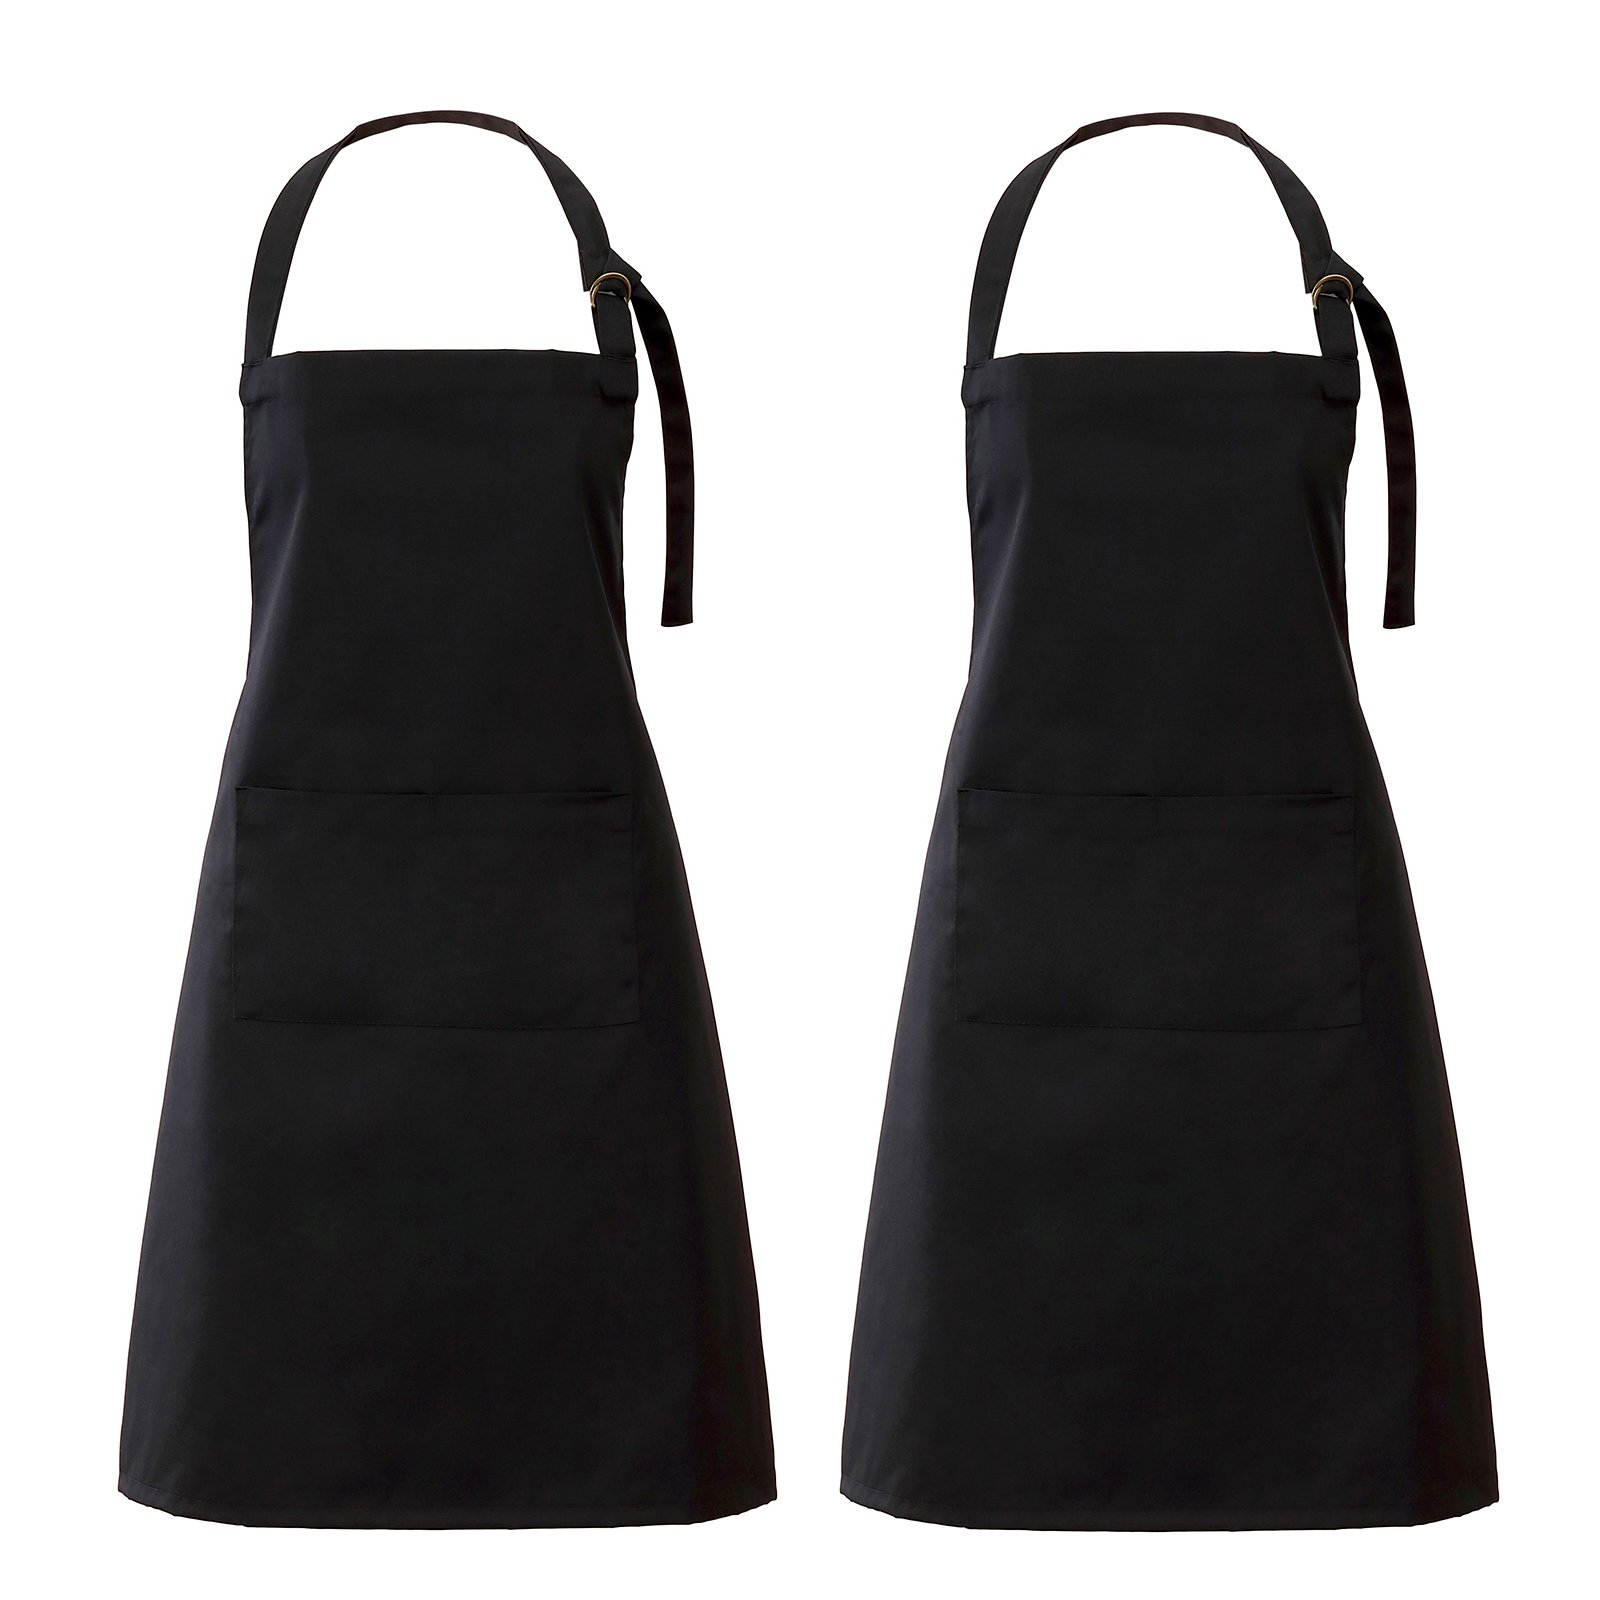 VEEYOO Adjustable Chef Bib Apron with 2 Pockets, Set of 2, Durable Spun Poly Cotton, Cooking Kitchen Restaurant Uniform Aprons for Men Women, 32x28 inches, Black